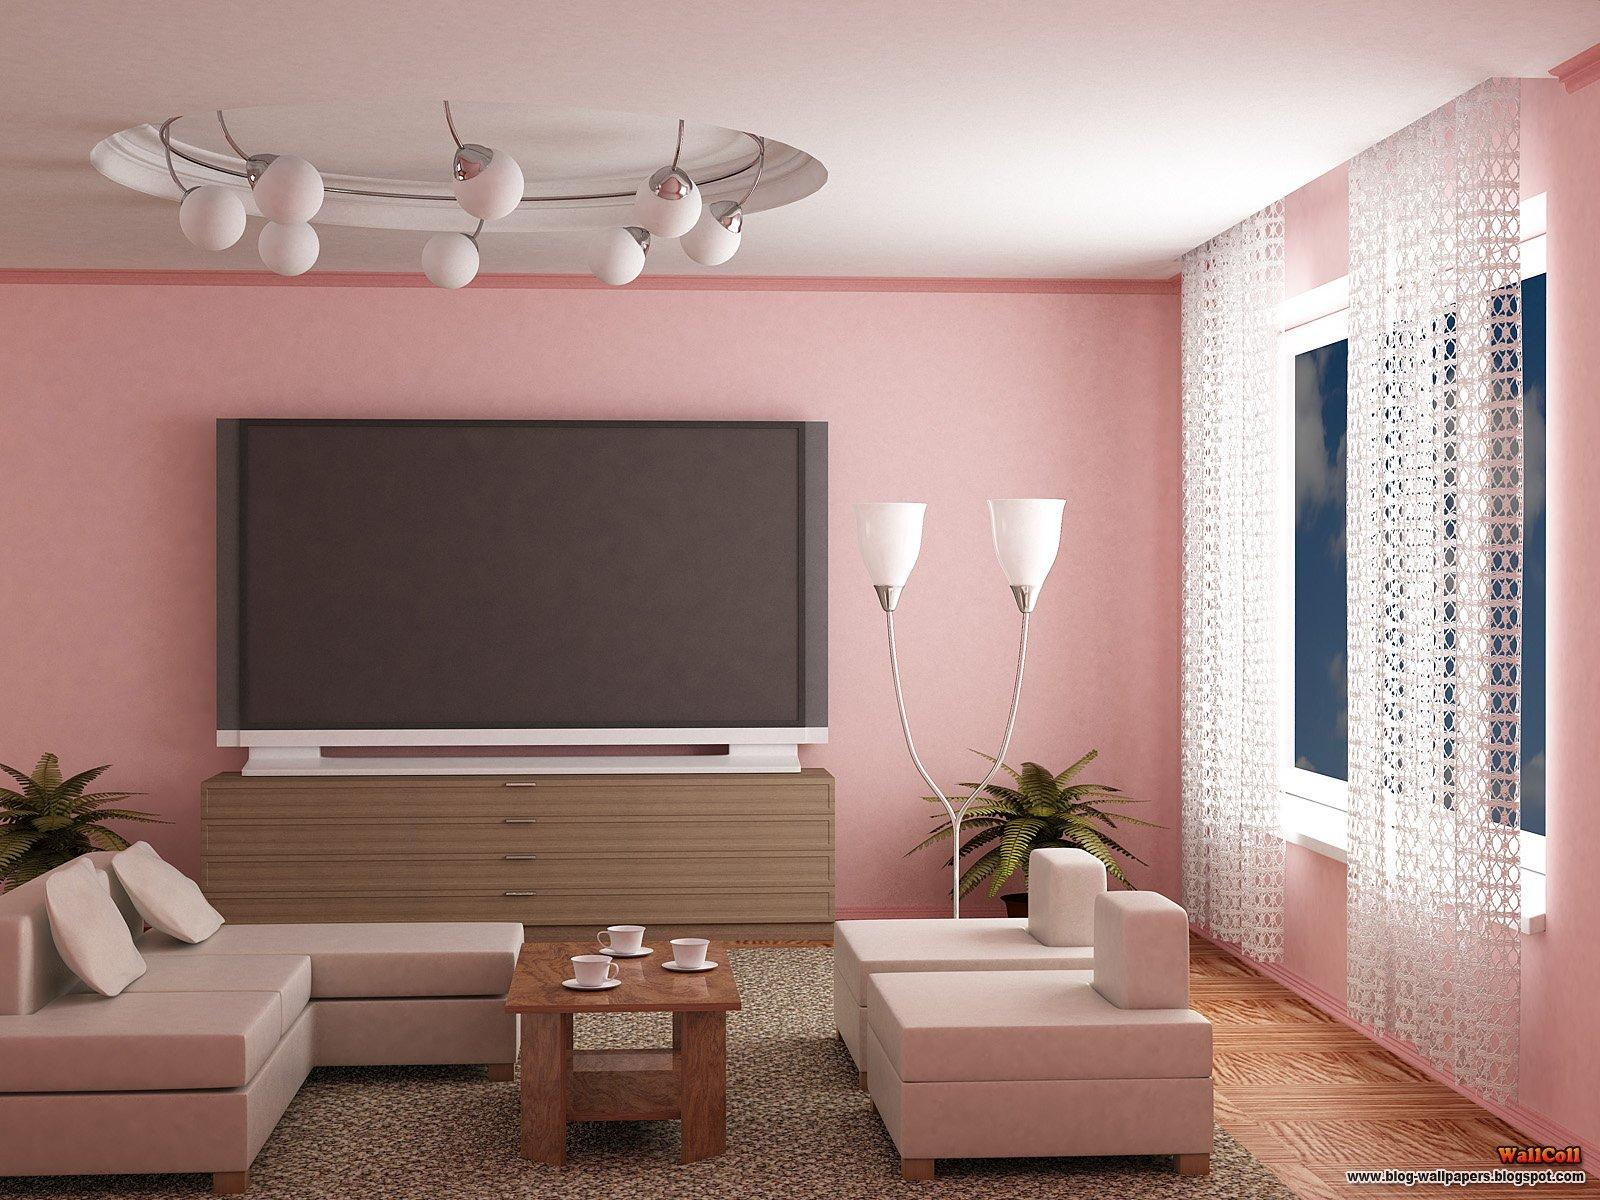 Asian paints royale pink colour rooms photos bill house plans Colors to paint rooms